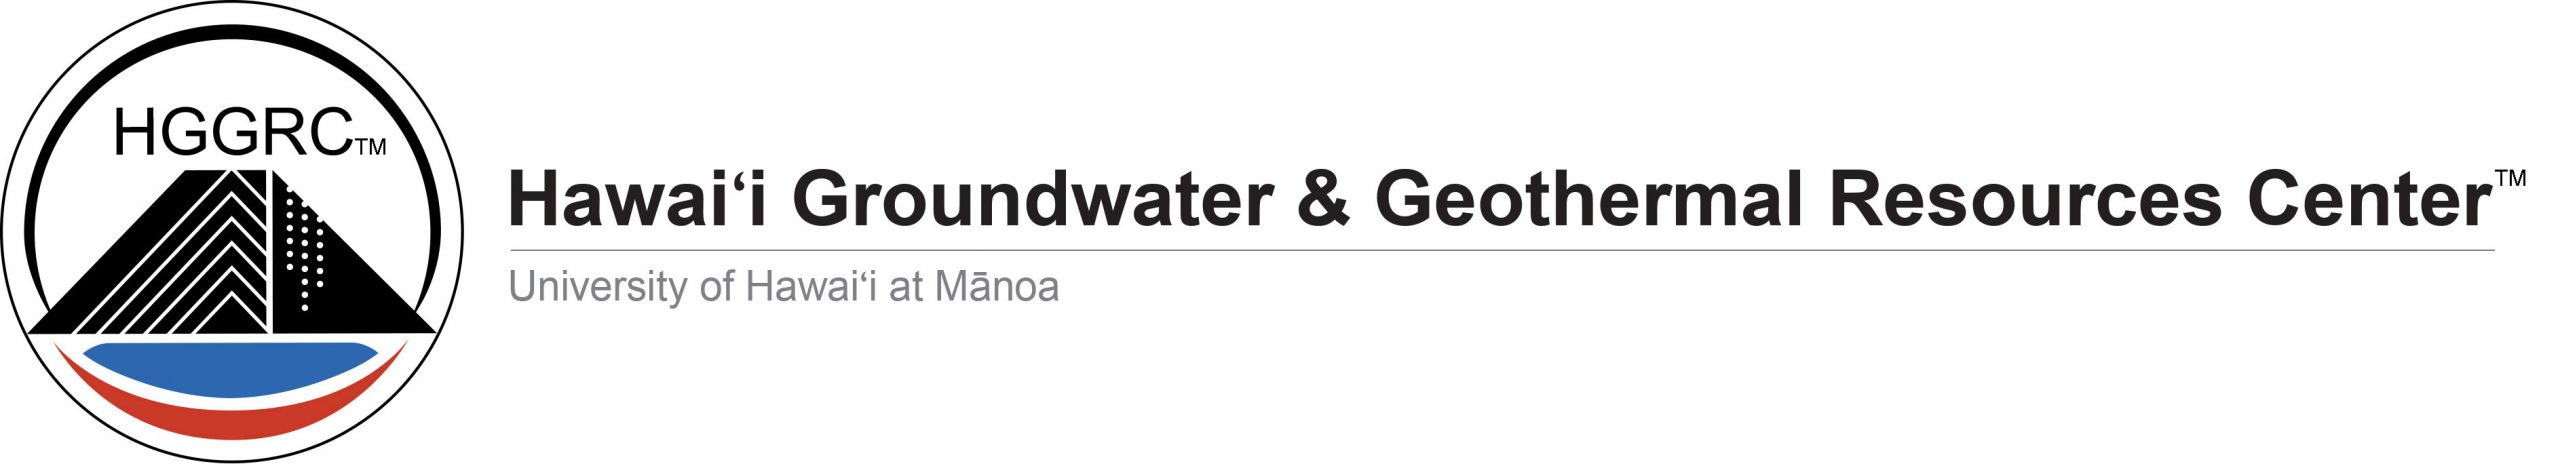 Hawai'i Groundwater & Geothermal Resources Center